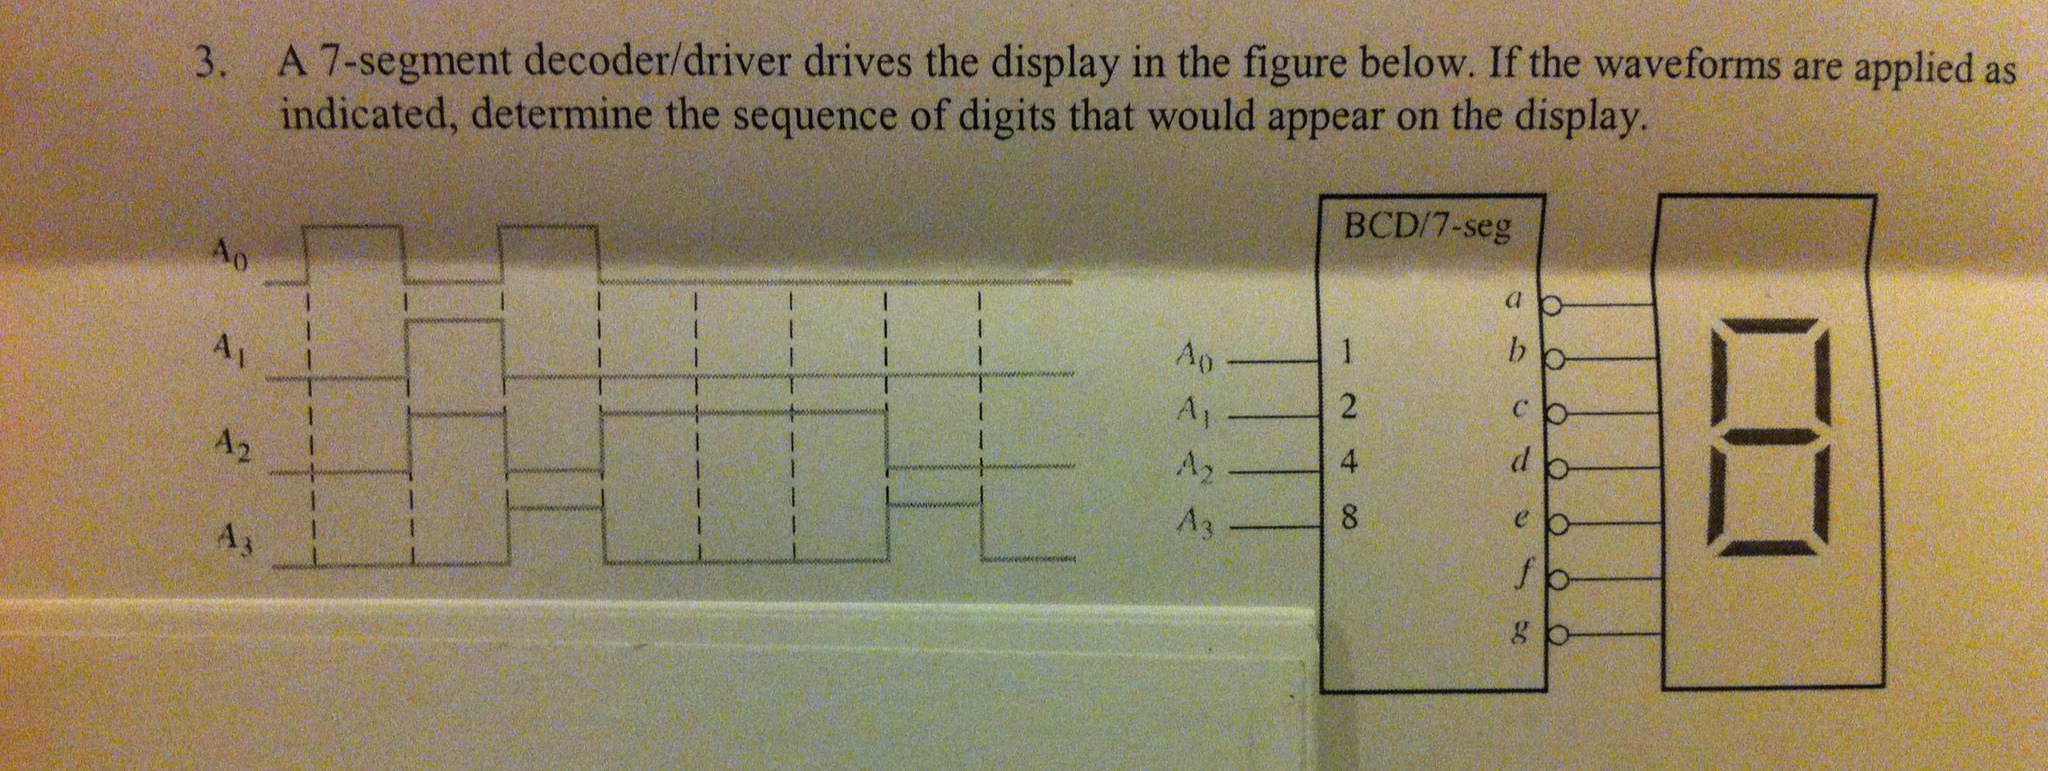 A 7 - Segment decoder/driver drives the display in